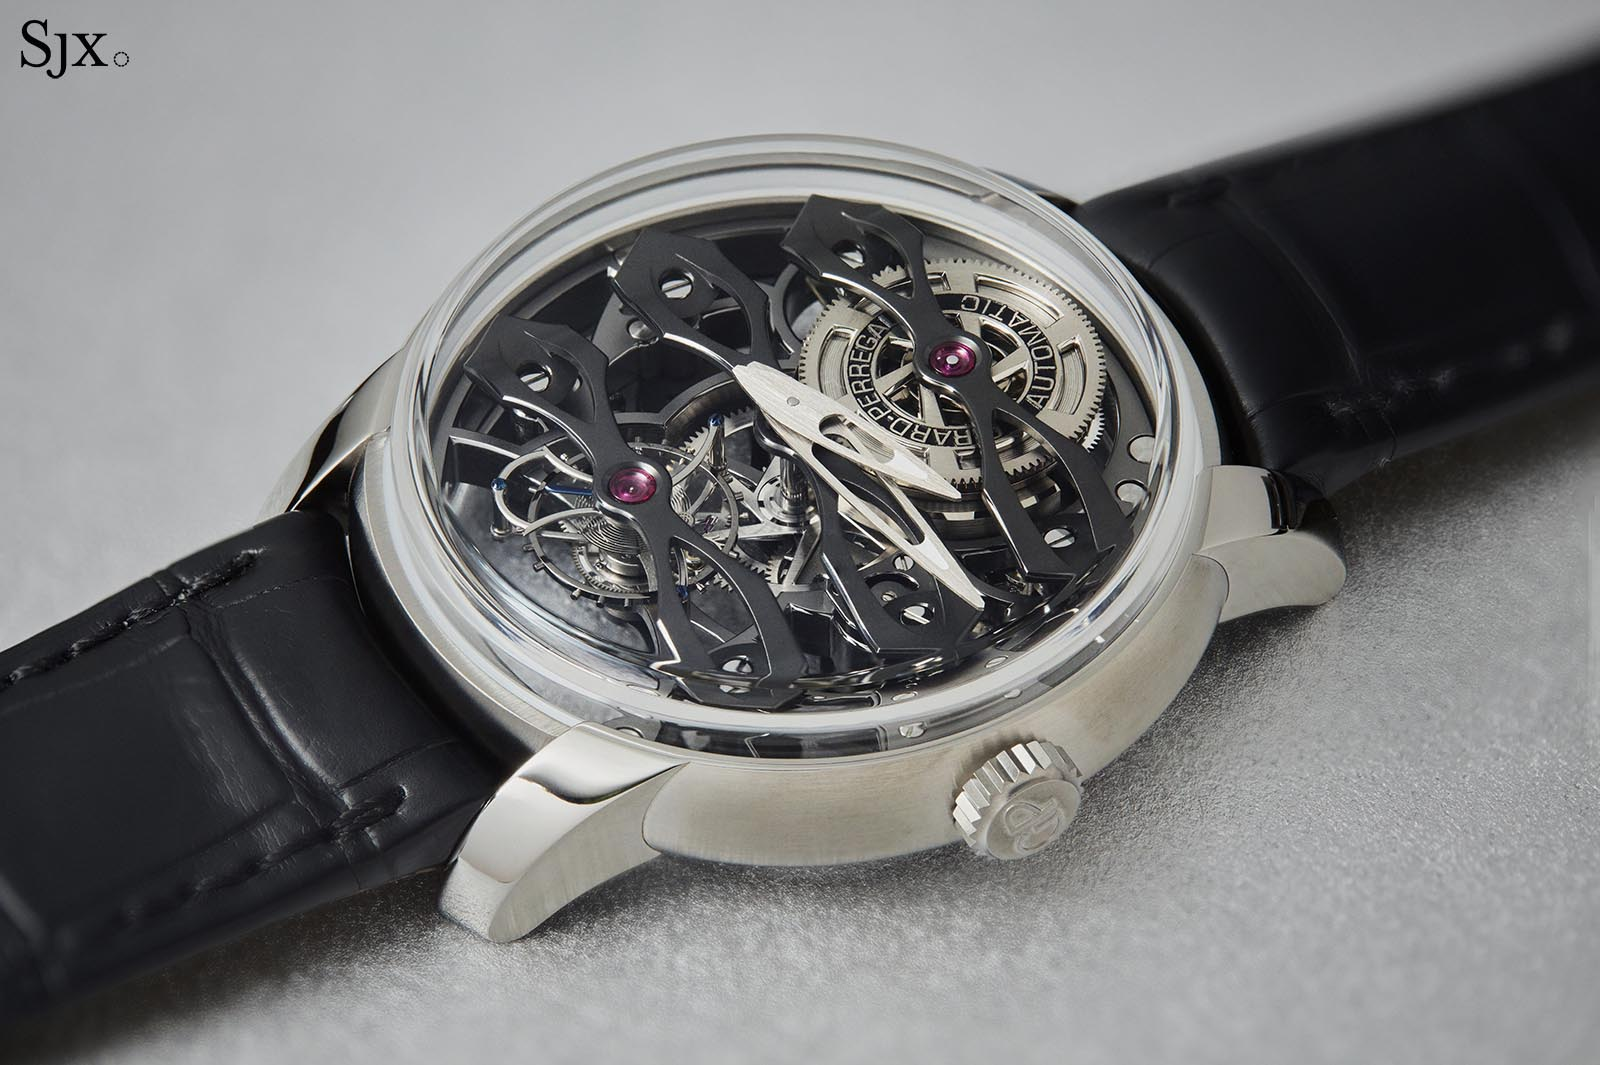 Girard Perregaux Neo-Tourbillon With Three Bridges Skeleton